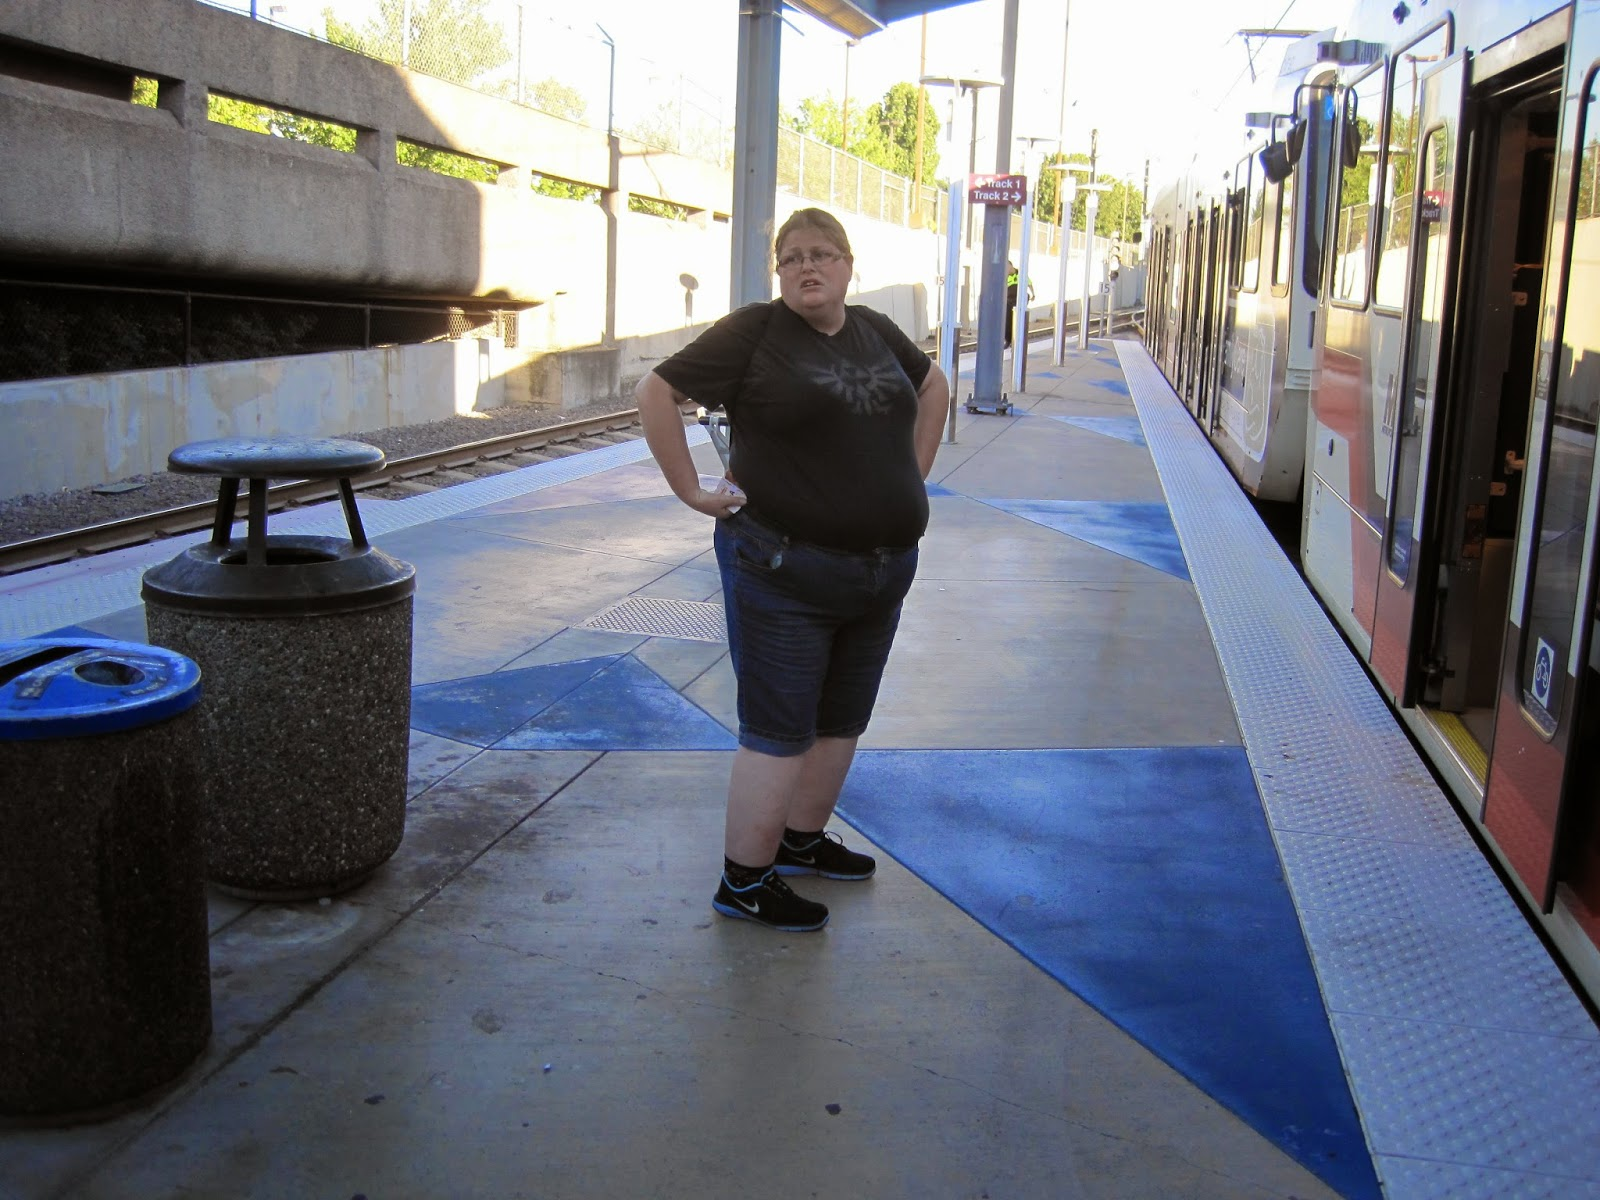 Jo McIntyre getting on the tram at PDX